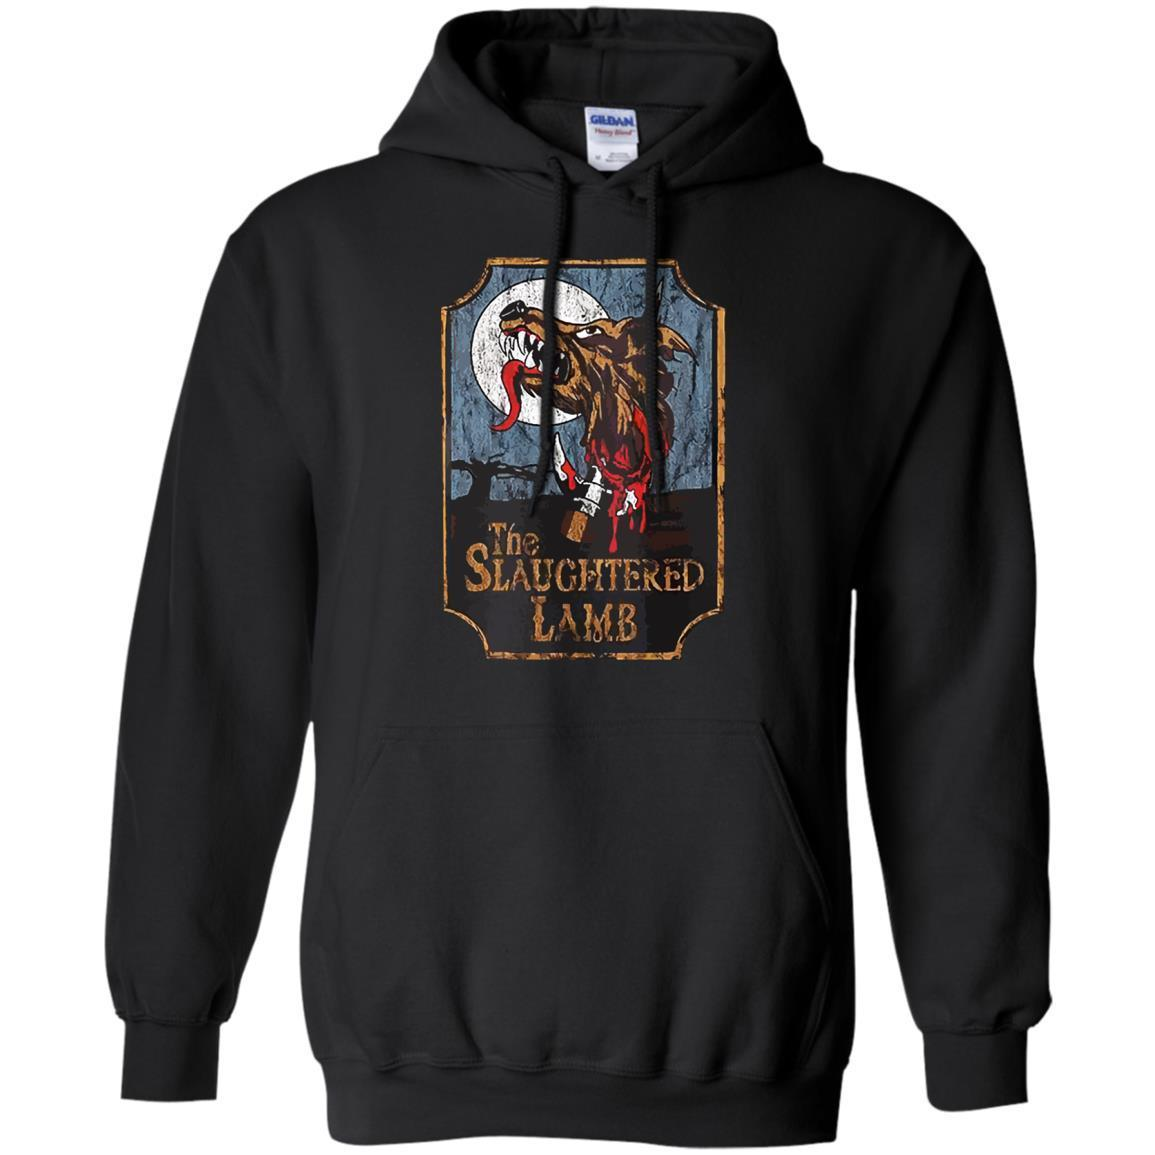 Buy An American Werewolf In London Slaughtered Lamb Halloween Shirts